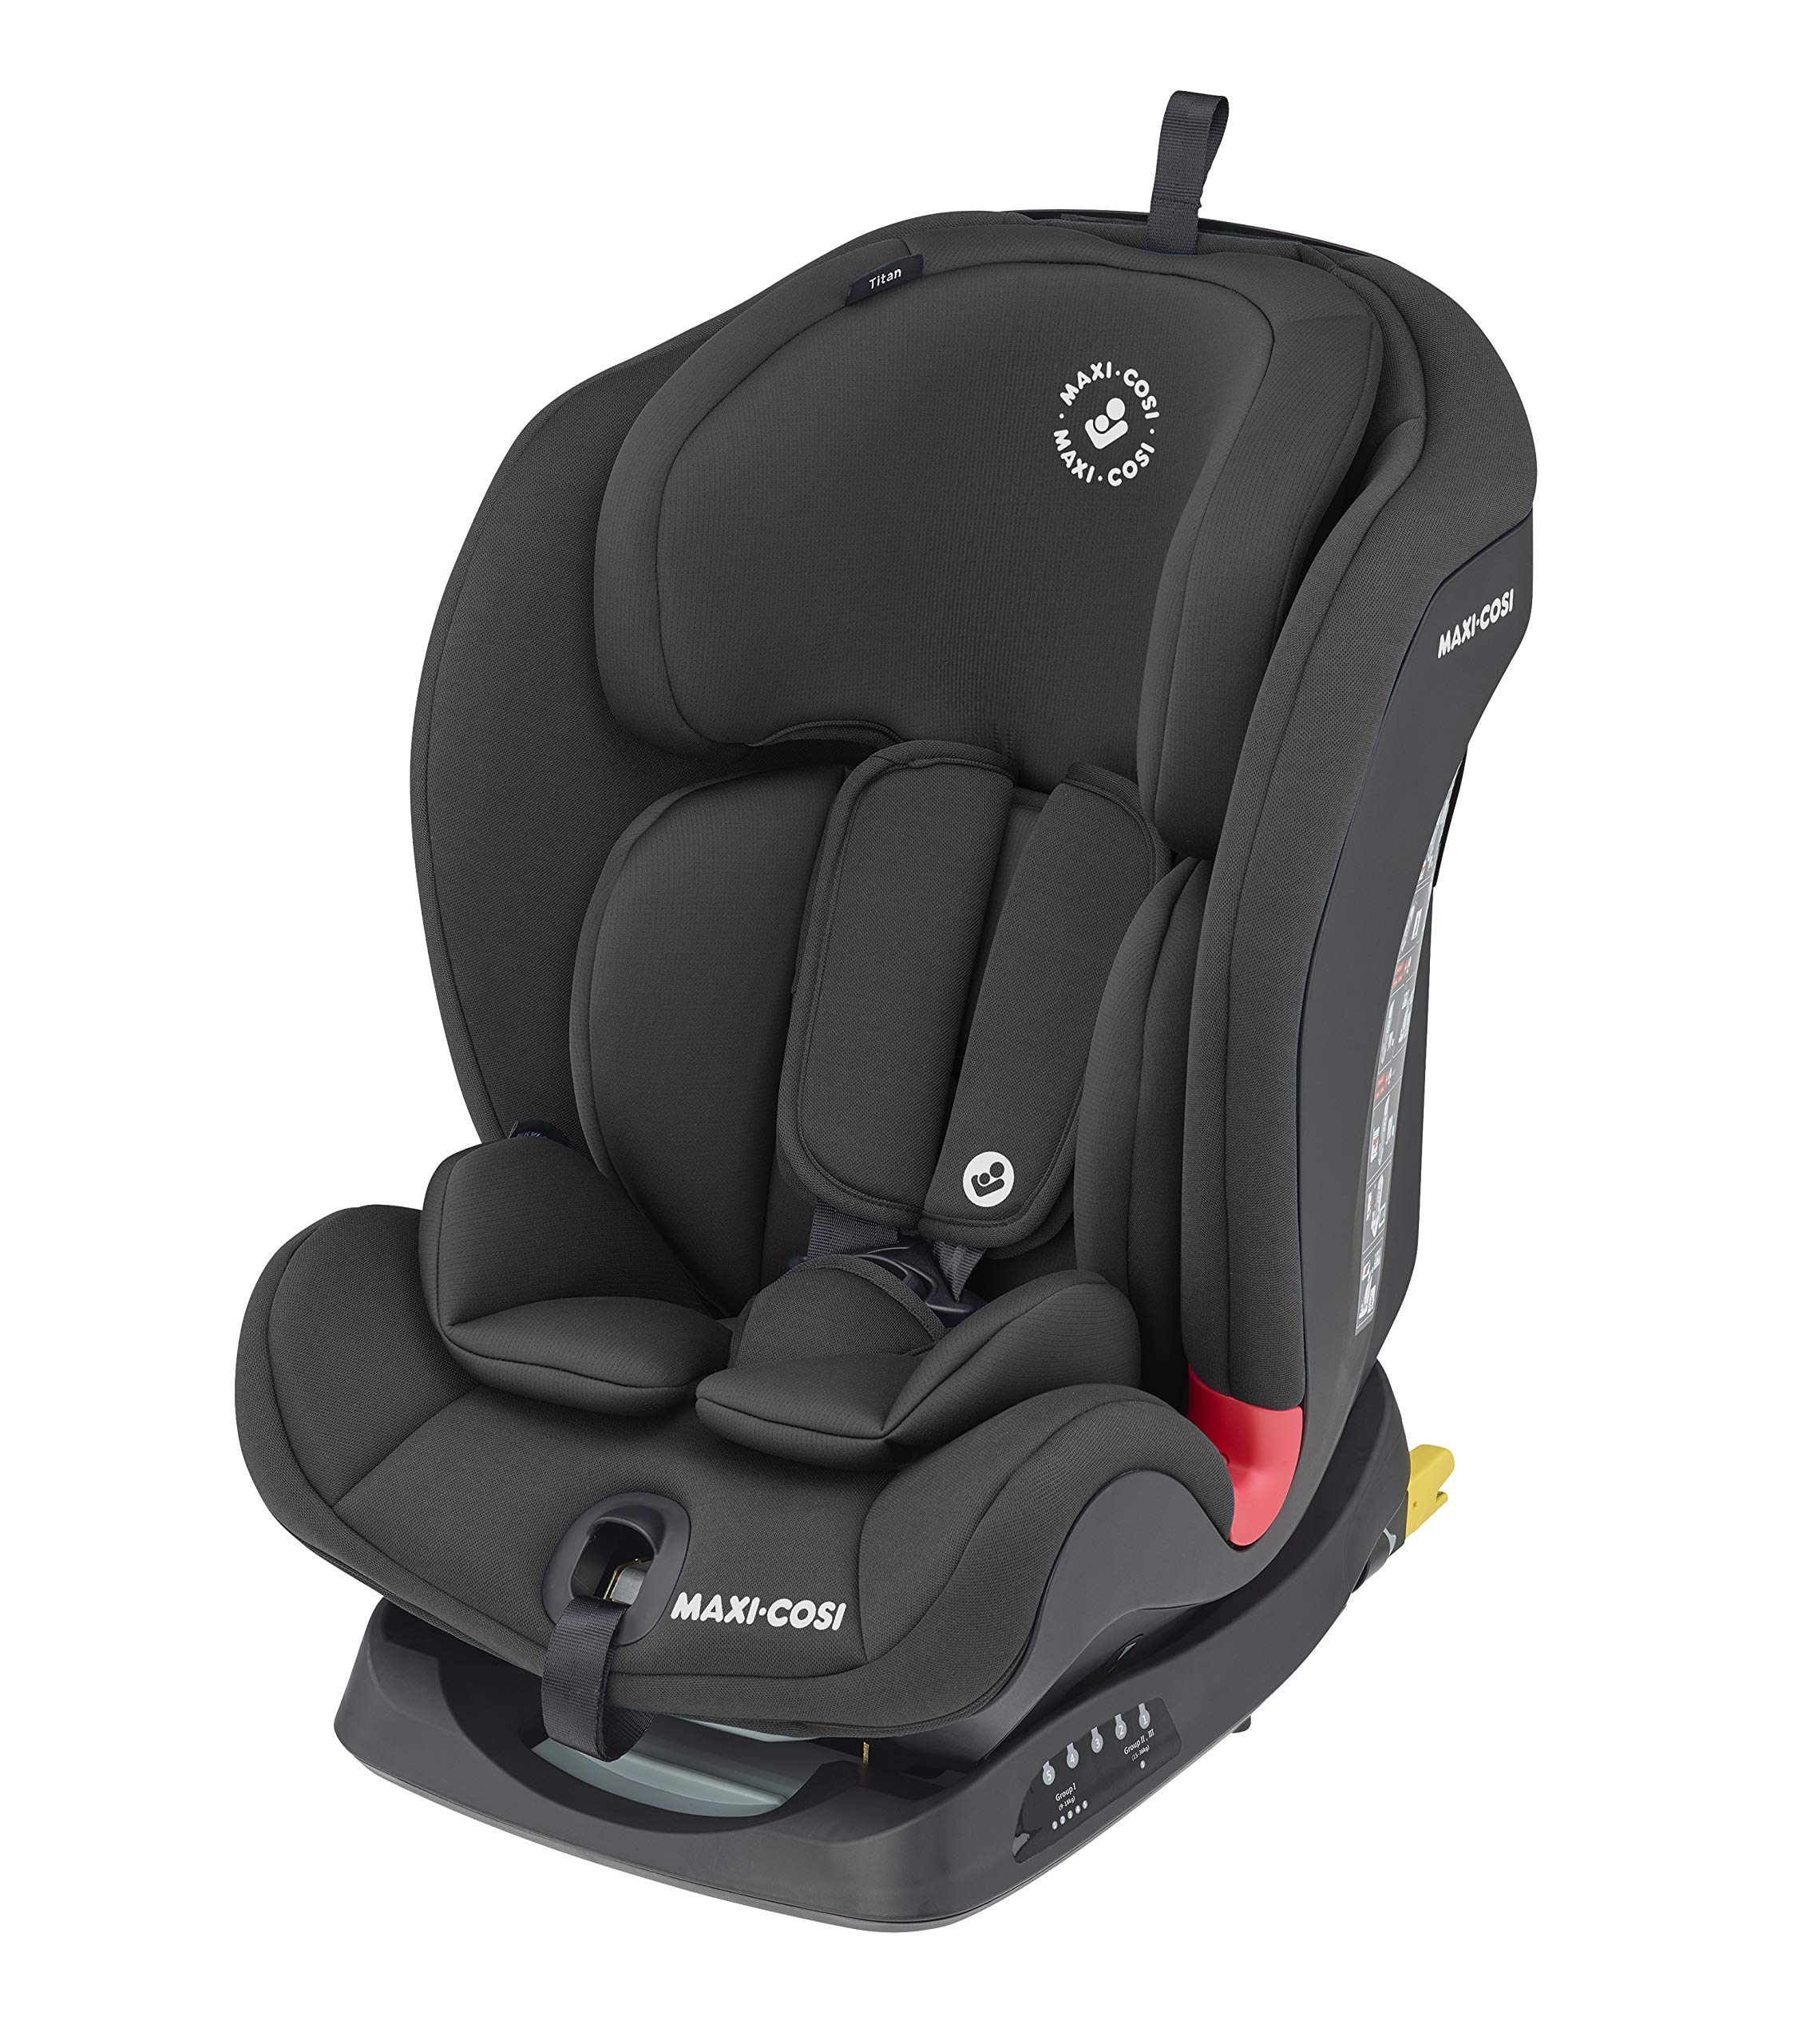 Maxi-Cosi Titan Toddler/Child group 1-2-3, Convertible,Reclining Isofix Car Seat, 9 months - 12 years, Basic Black Maxi-Cosi A multi-stage car seat suitable for babies, toddler and children from 9 months to 12 years (approx. 9 - 36 kg) Easy adjustable and smooth headrest of this reclining car seat grows along in 11 steps to provide ultimate comfort for your little one Solid isofix installation with top tether offers great stability for this convertible car seat 1